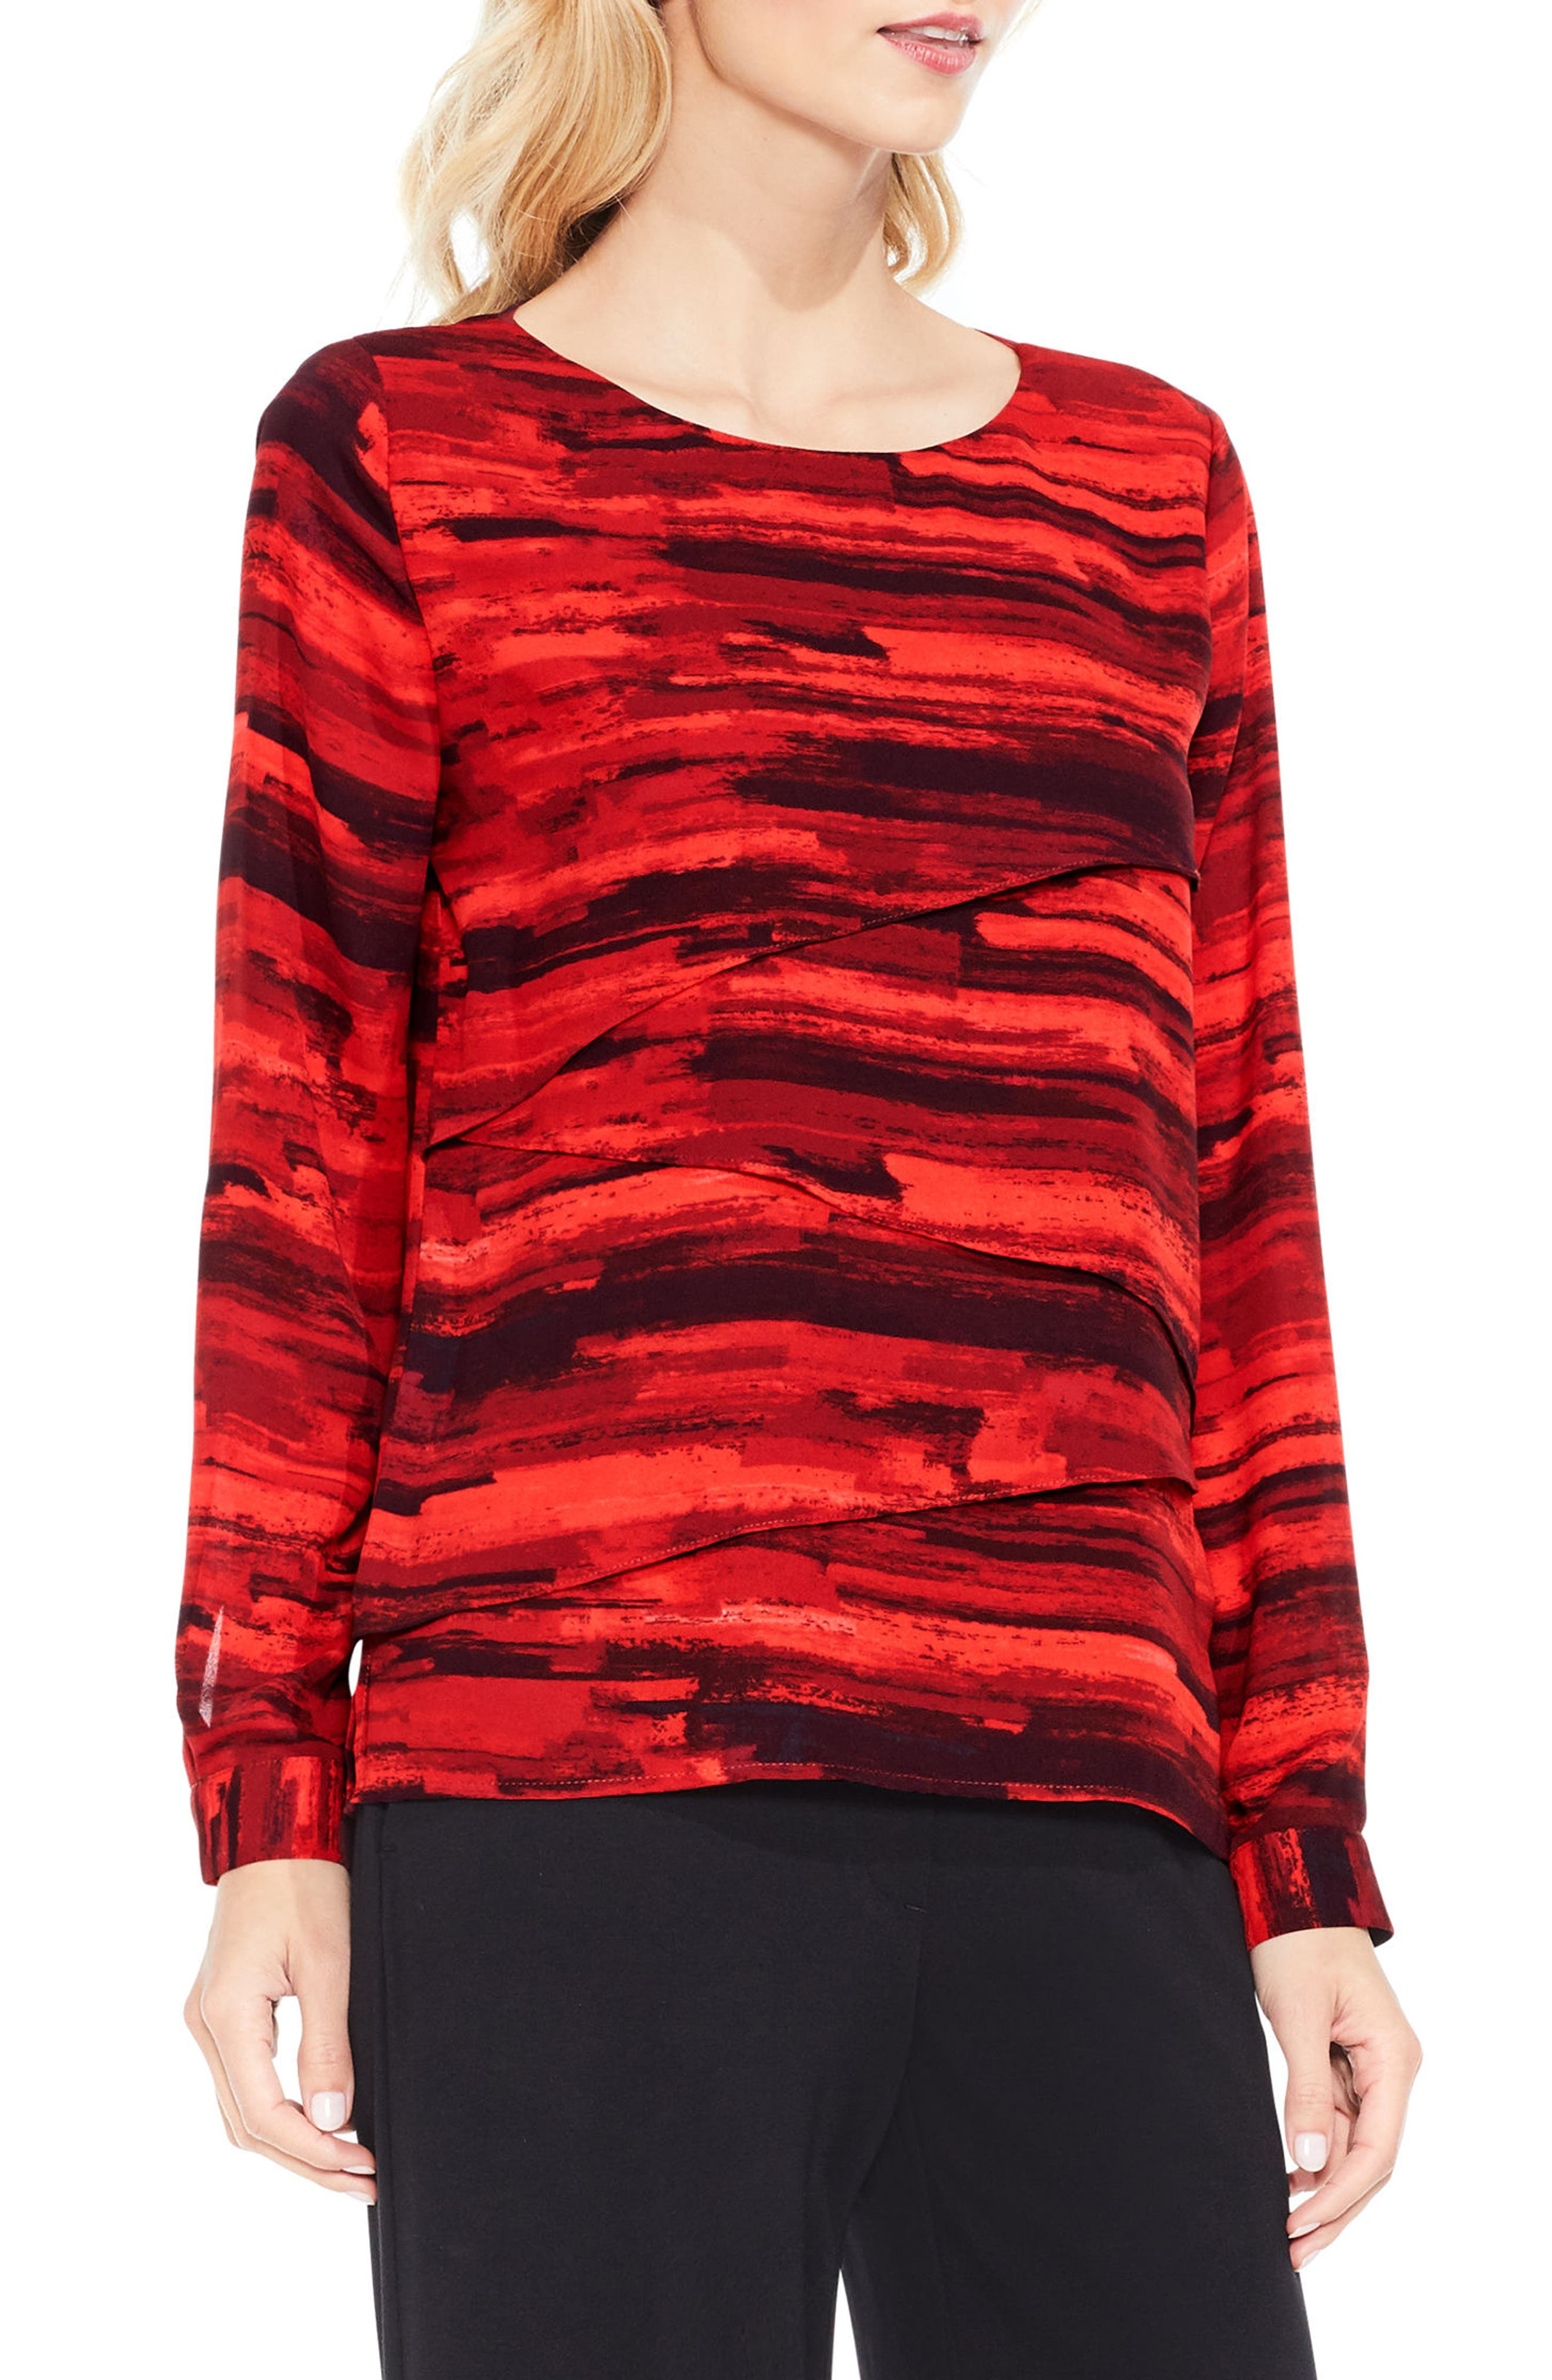 Muses Print Tiered Blouse,                         Main,                         color, 614